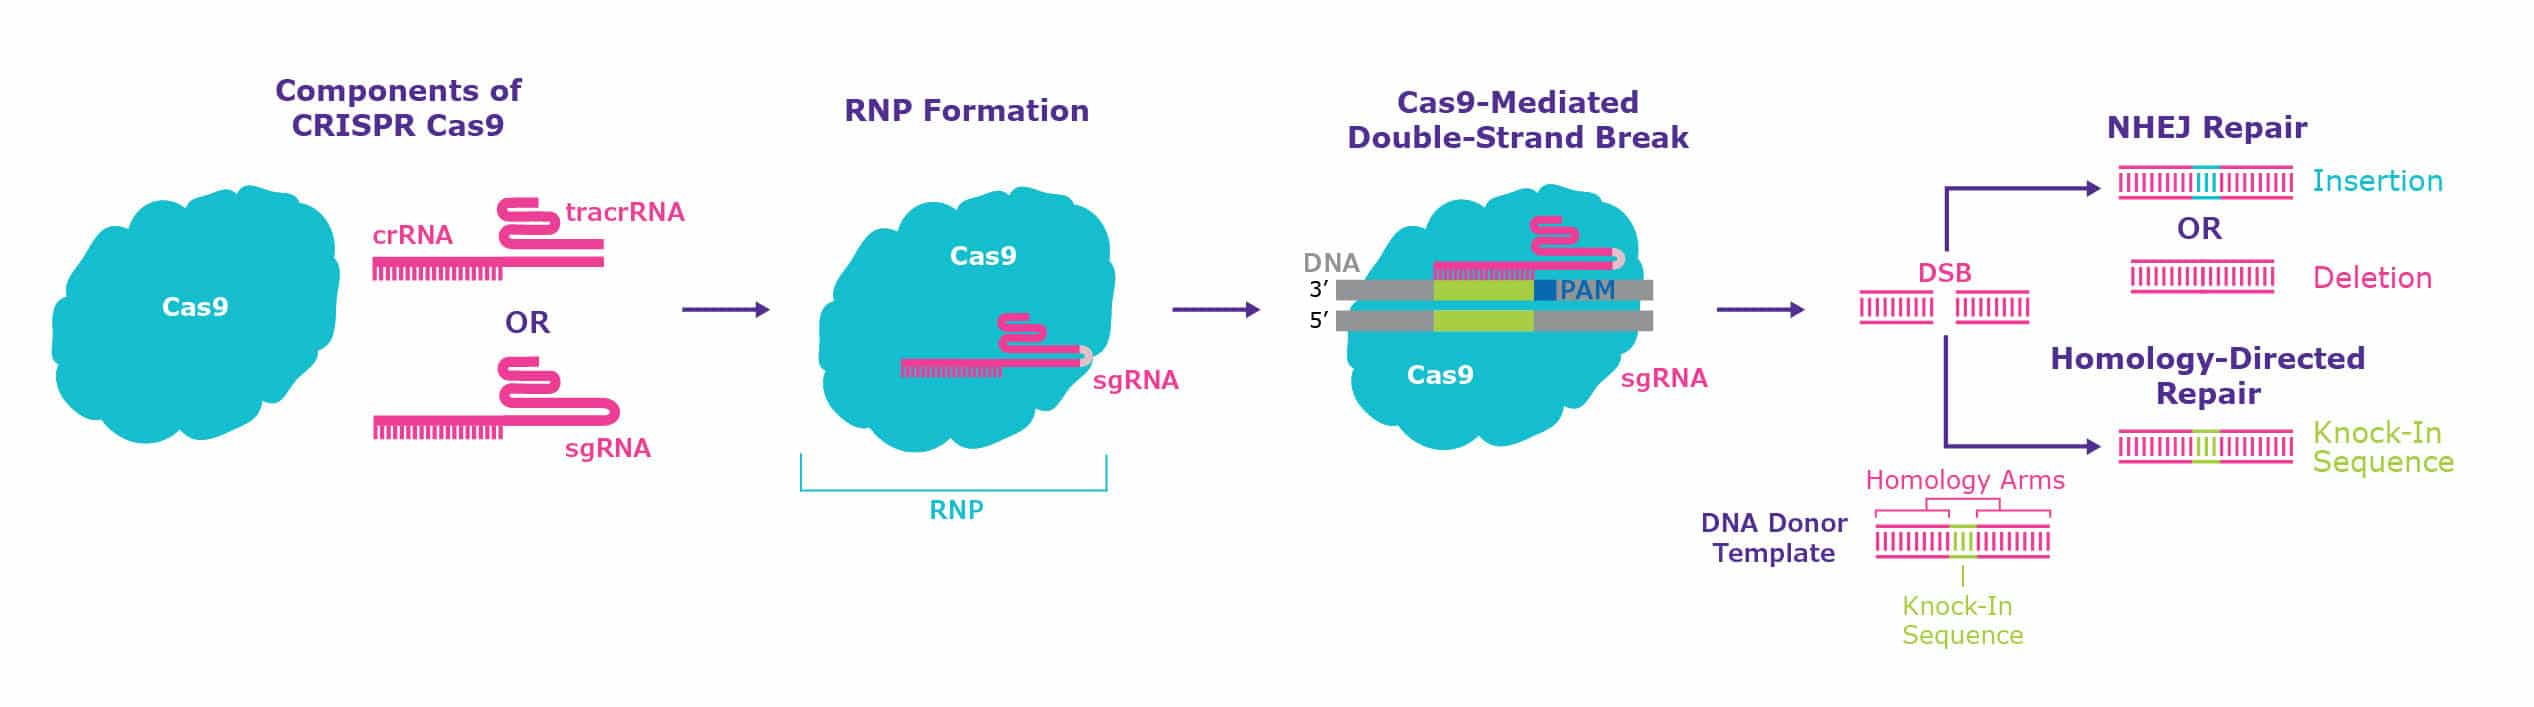 Schematic of CRISPR complex formation and generation of double-strand breaks.